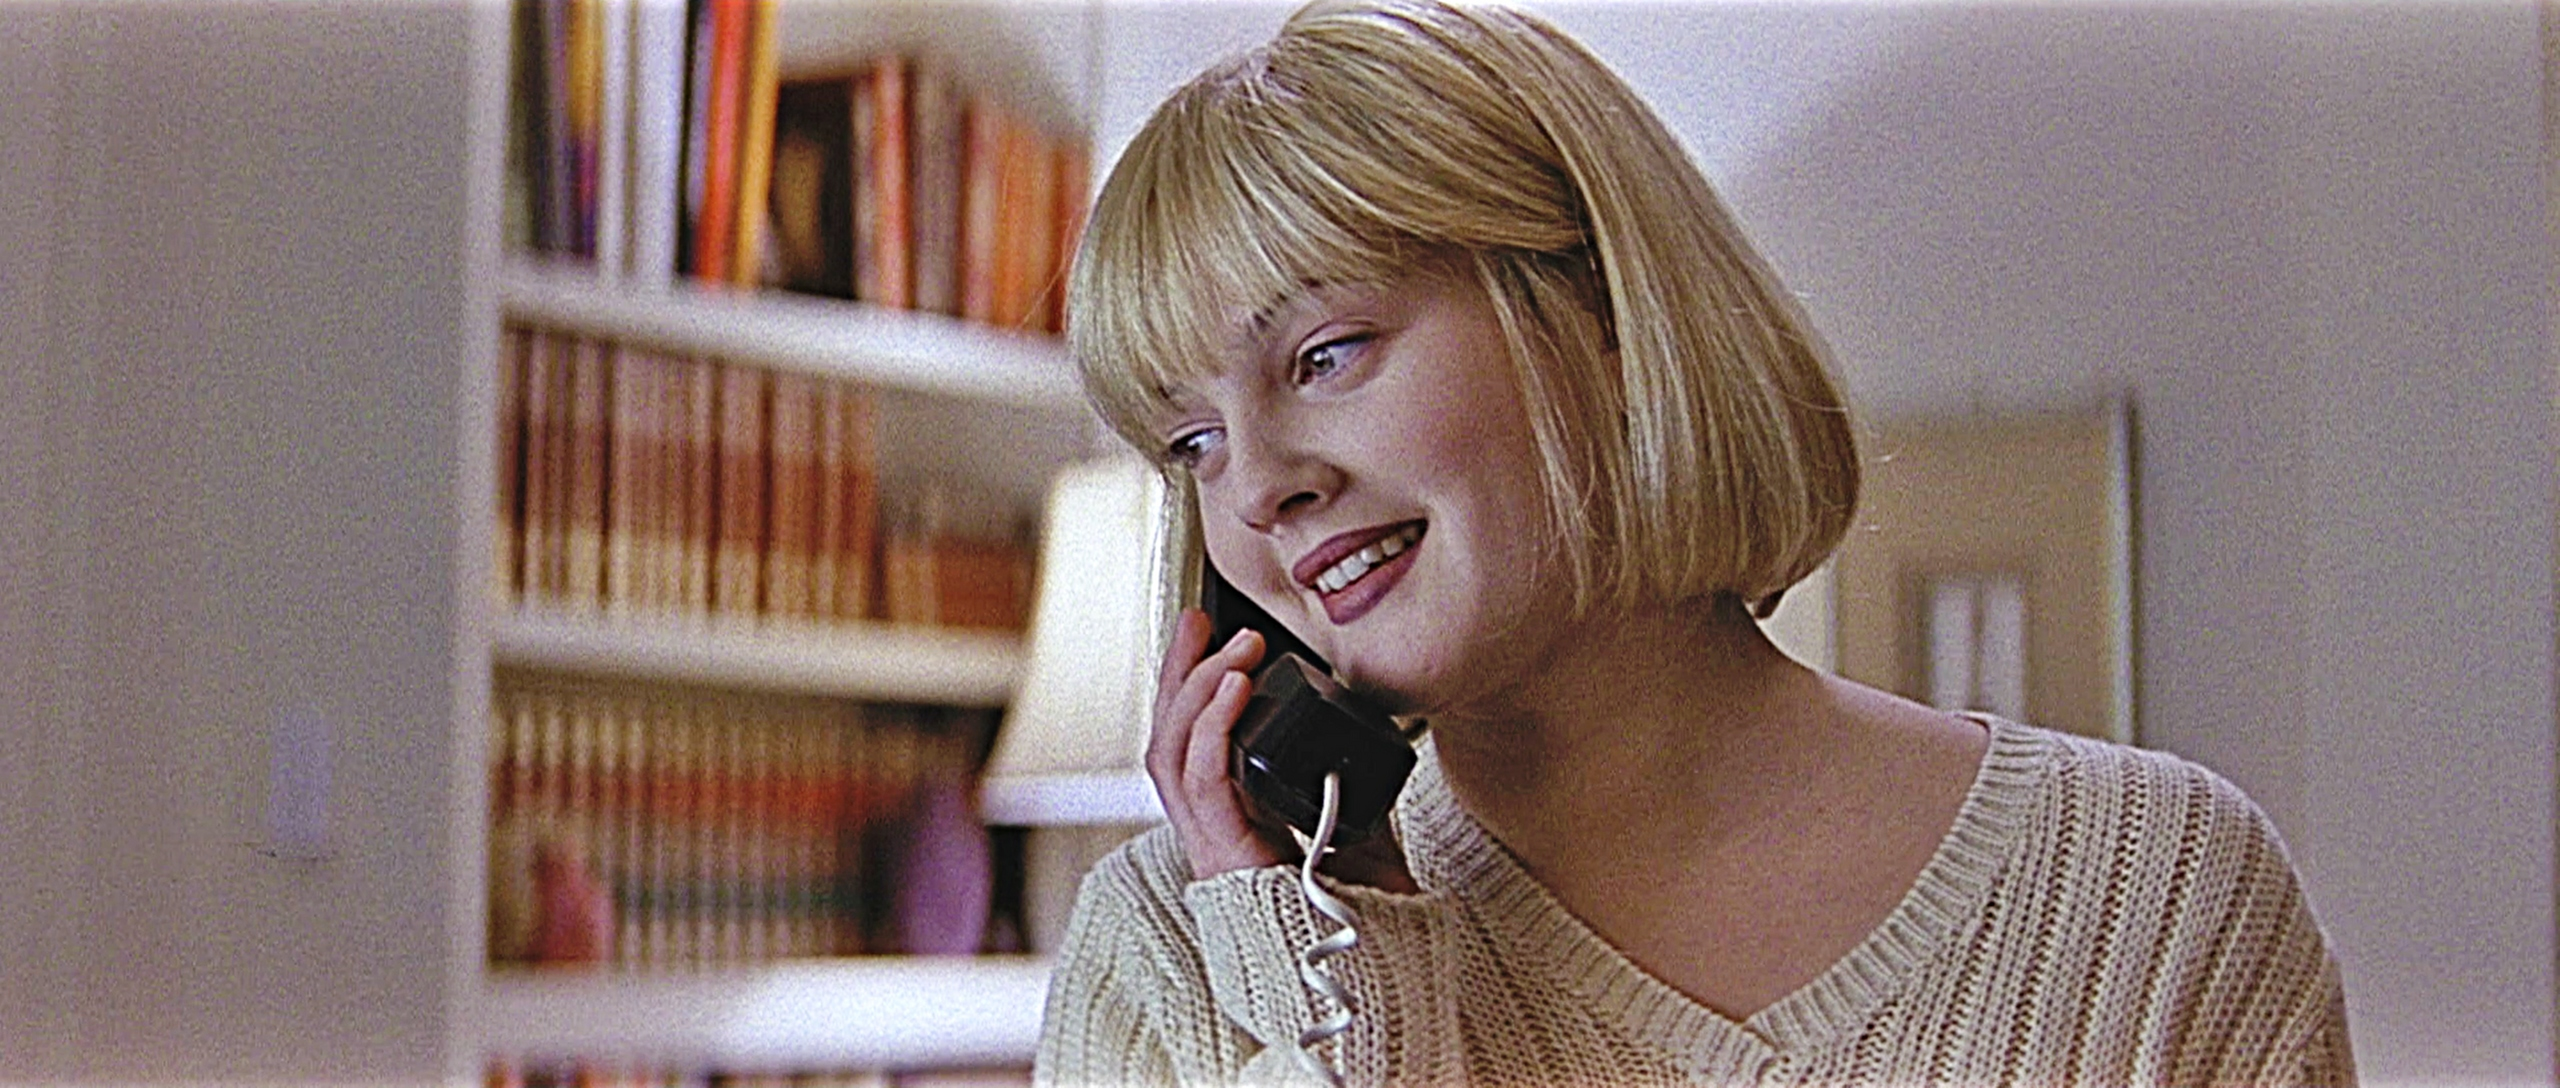 Scream 1996 Casey Becker